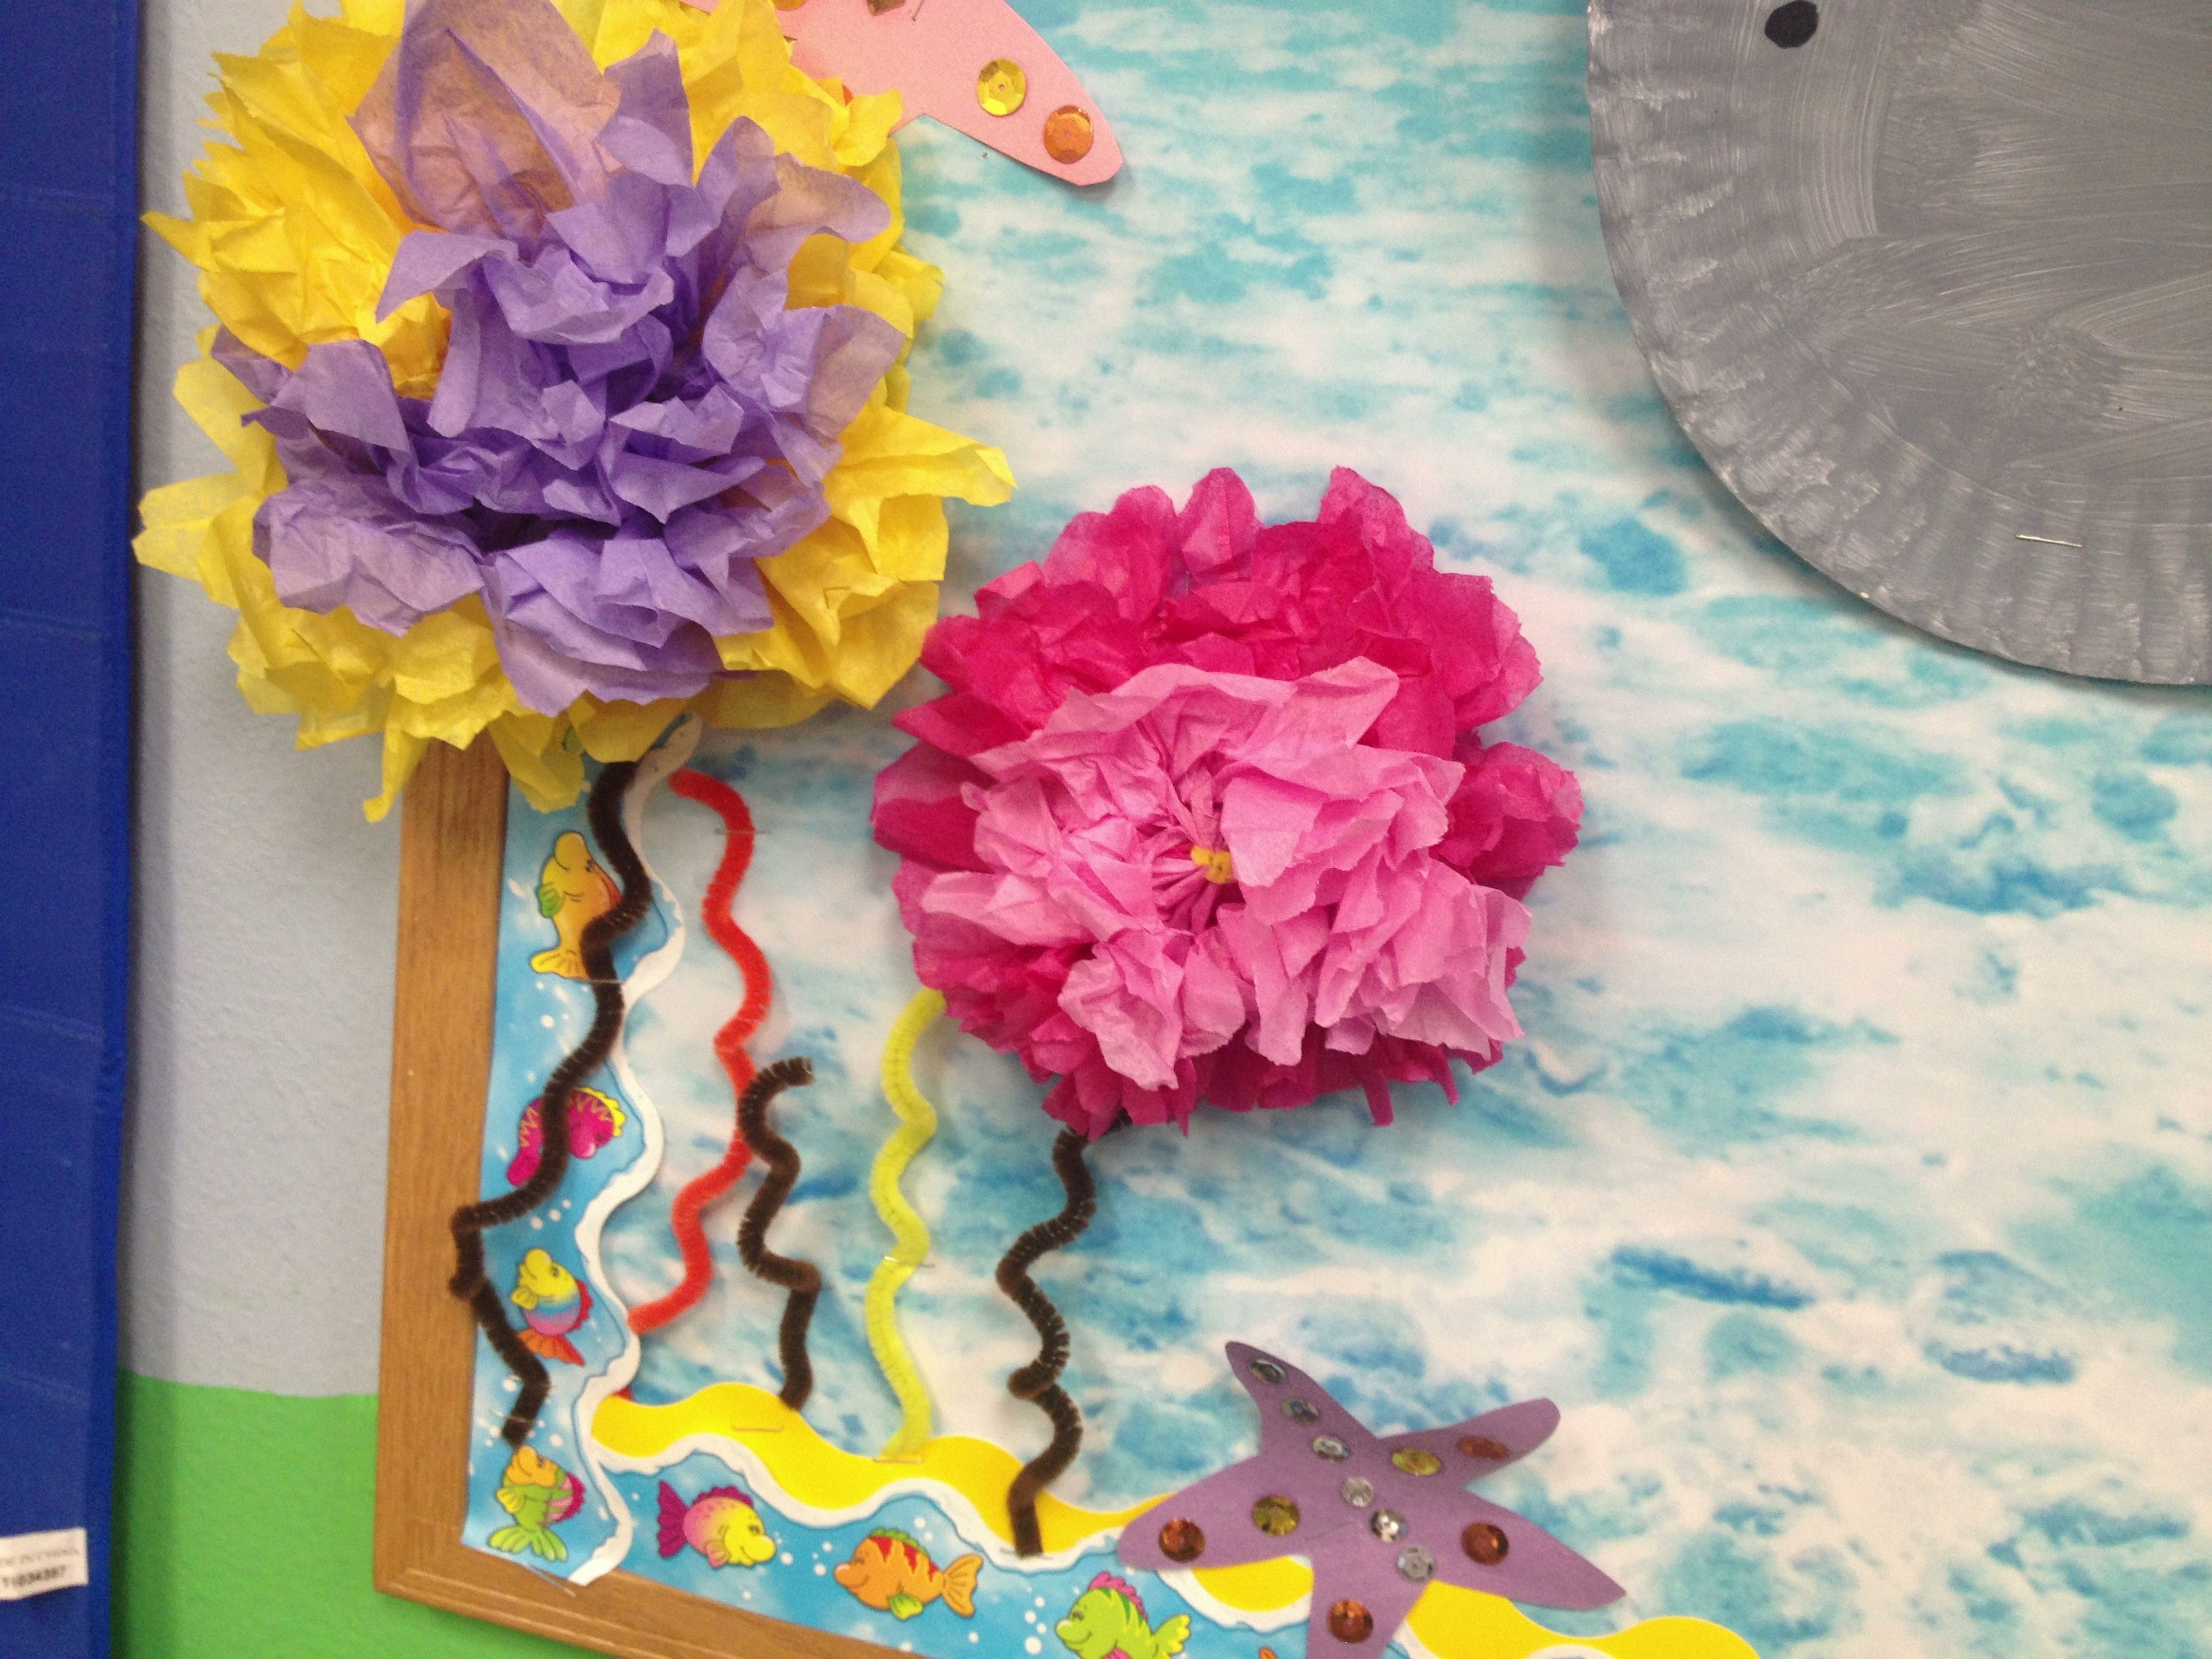 coral reefs or ocean flowers using tissue paper flowers